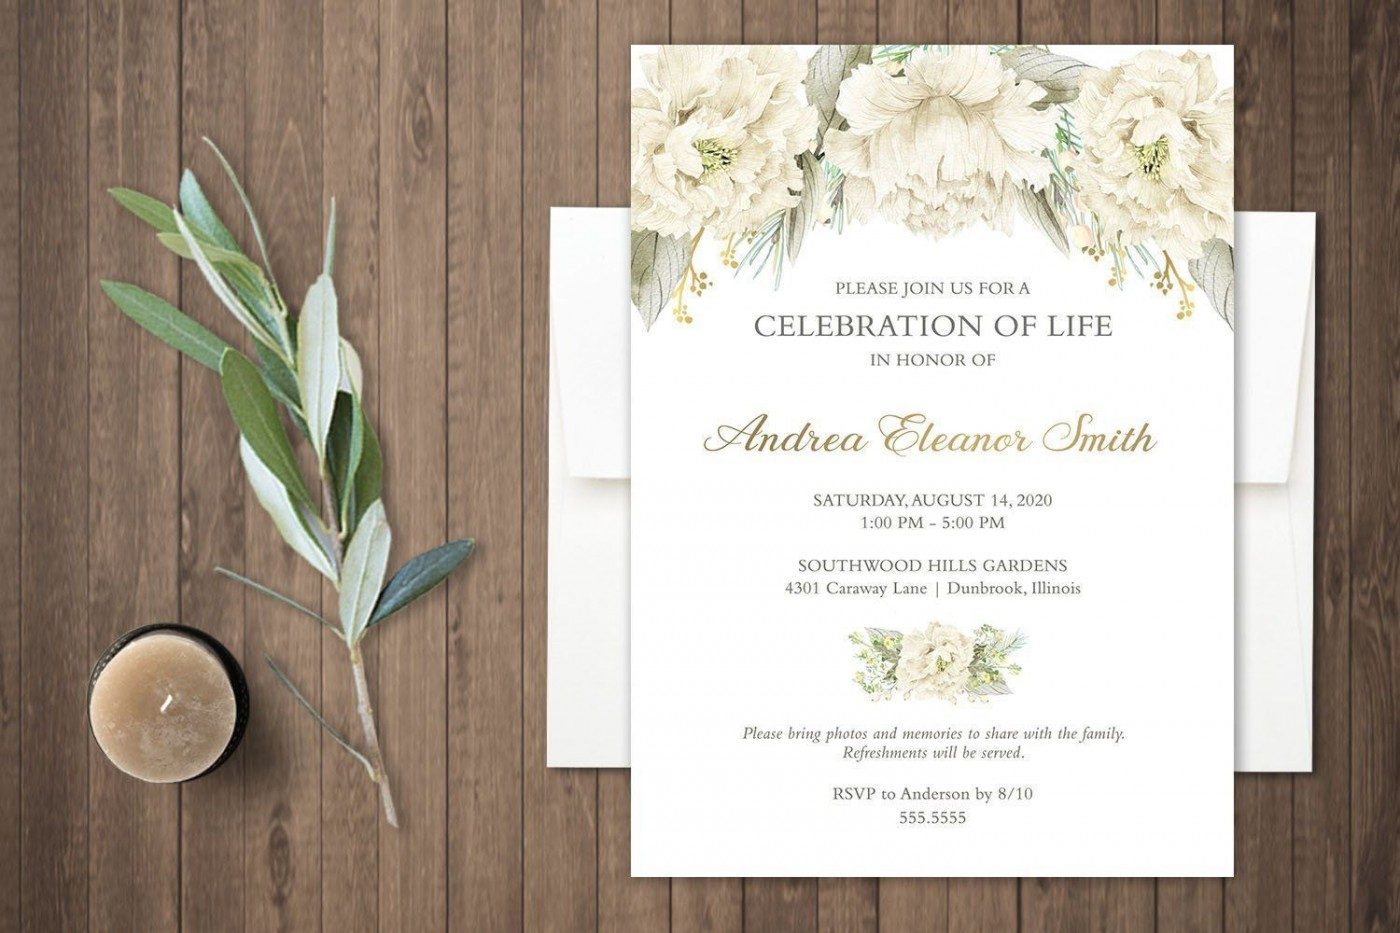 000 Singular Celebration Of Life Invite Template Free High Resolution  Invitation Download1400